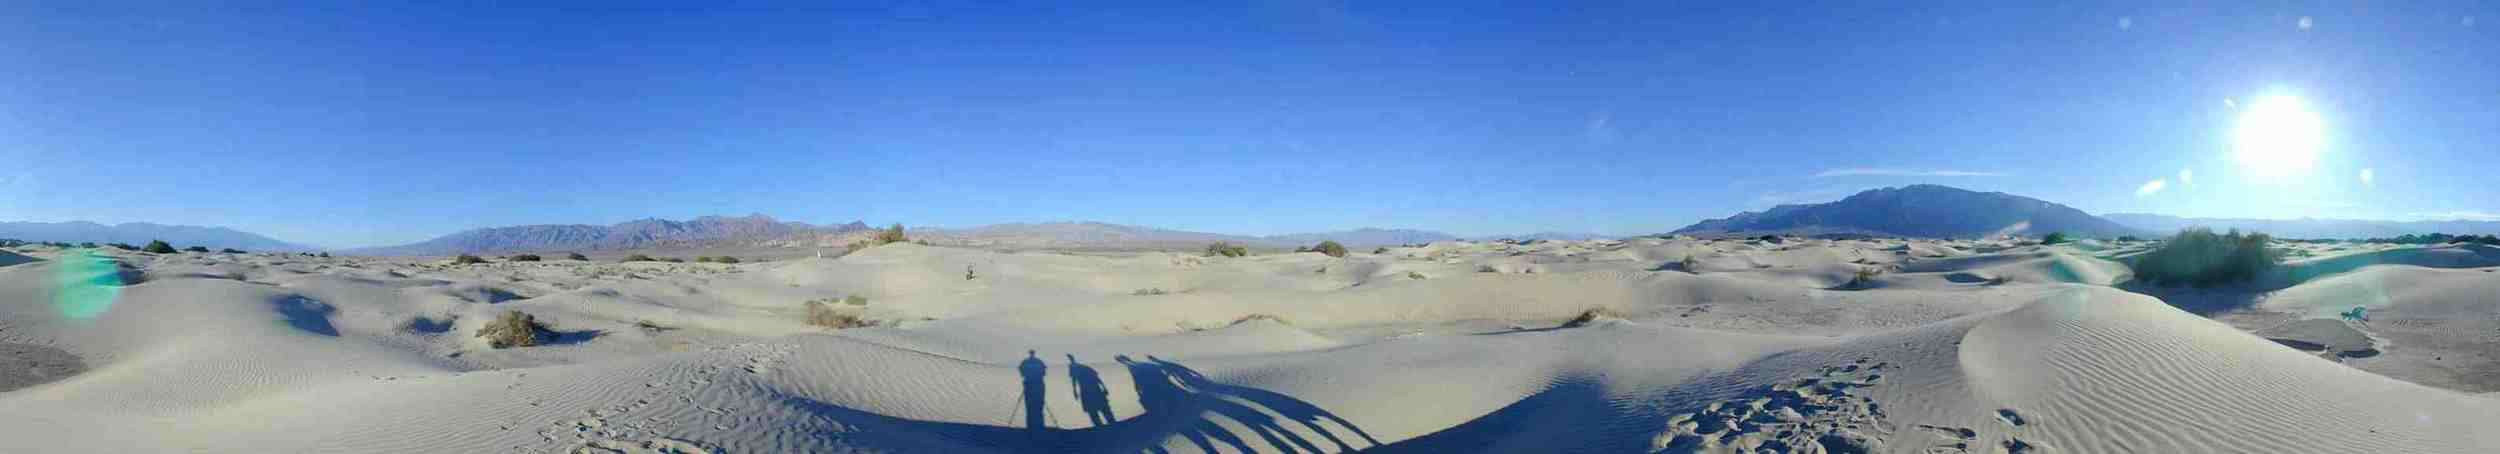 "Panorama from the top of the big dune.   36°38'38.8""N 117°04'33.9""W"